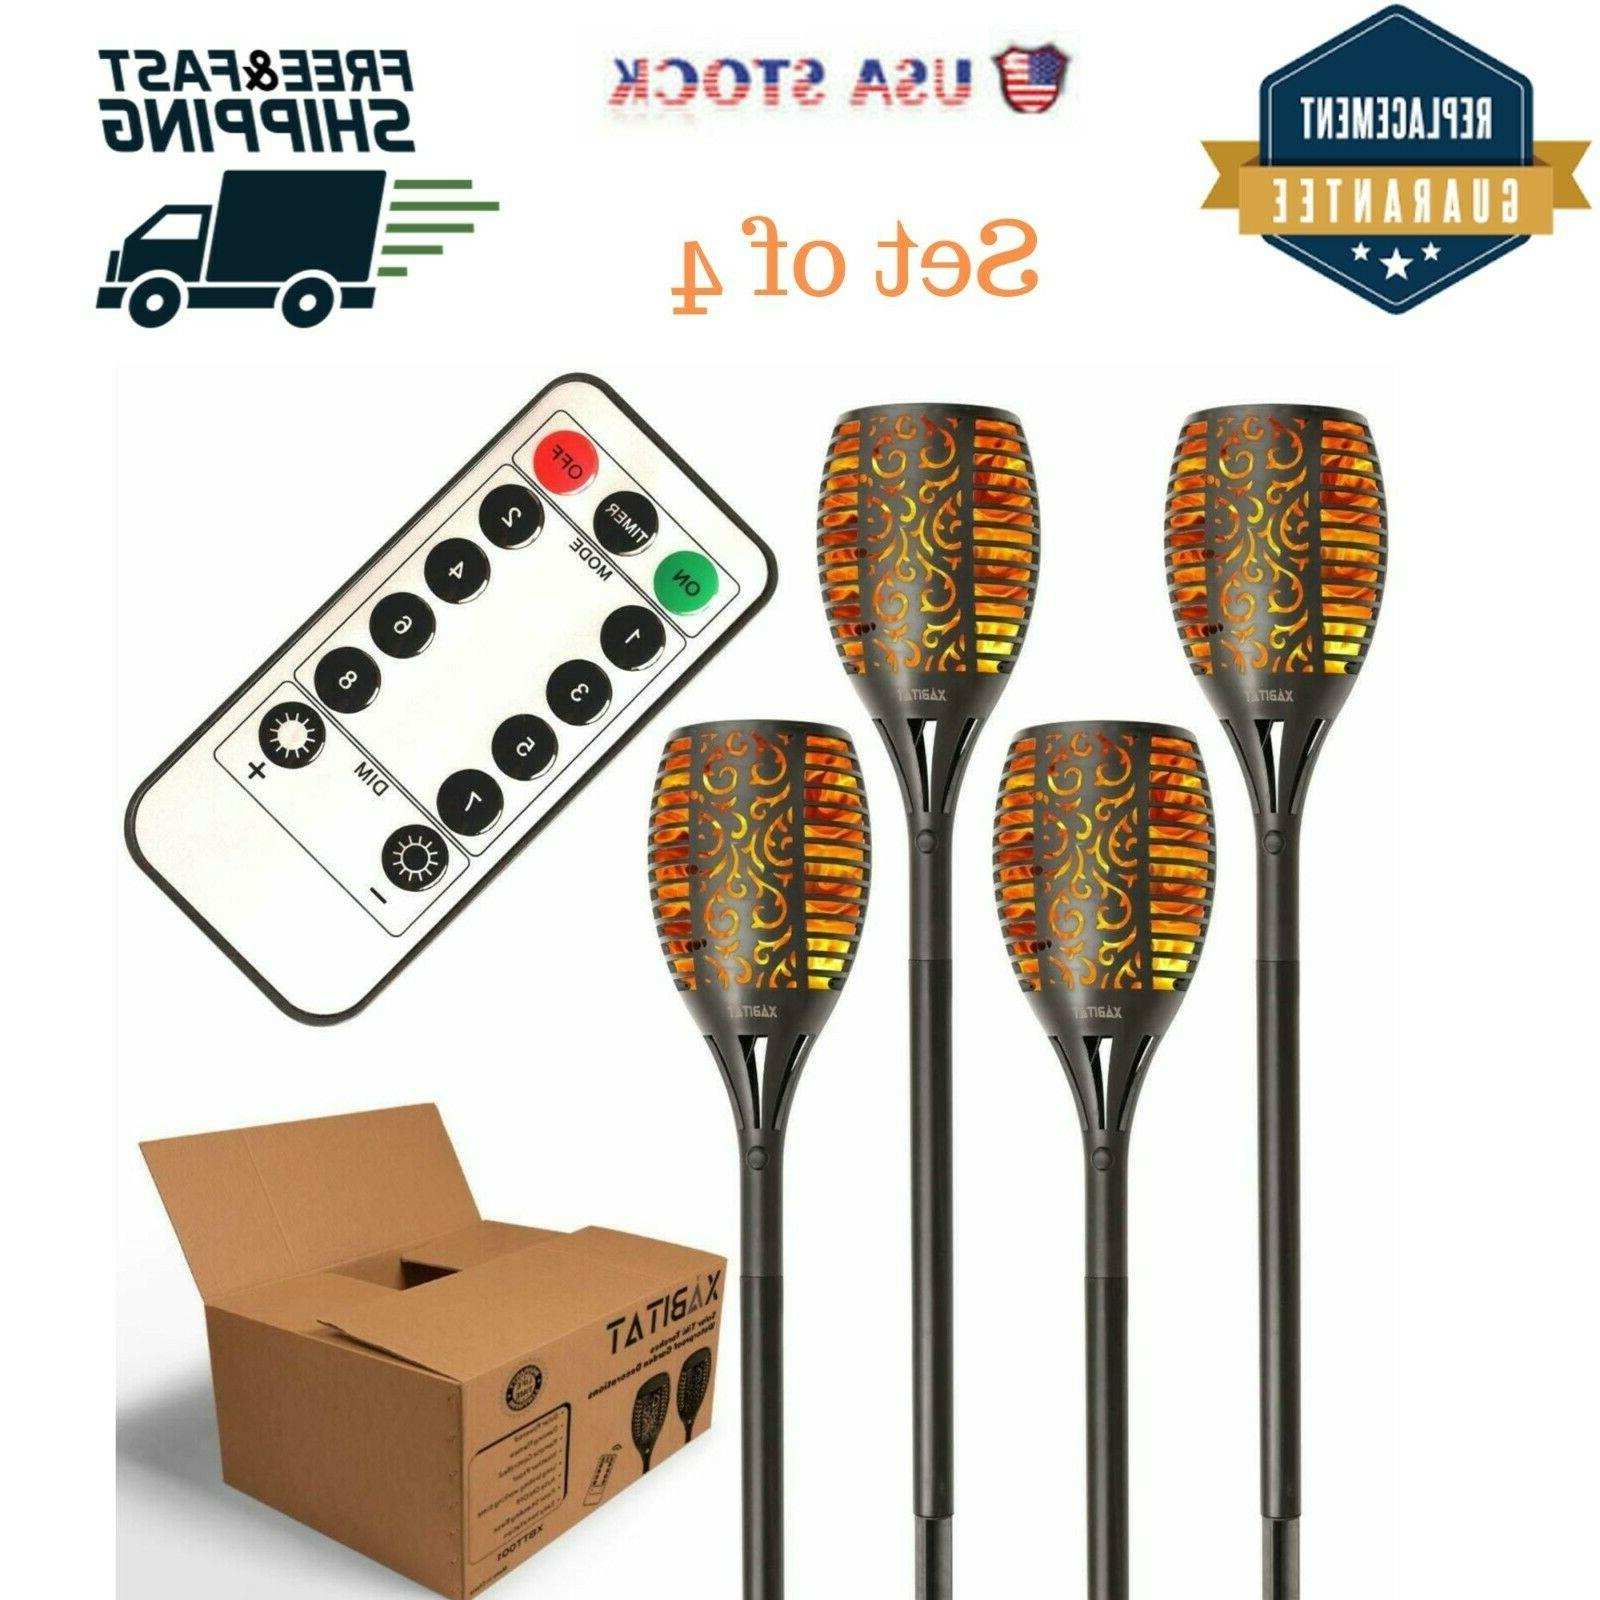 Xabitat Lights-Remote controlled-Outdoor